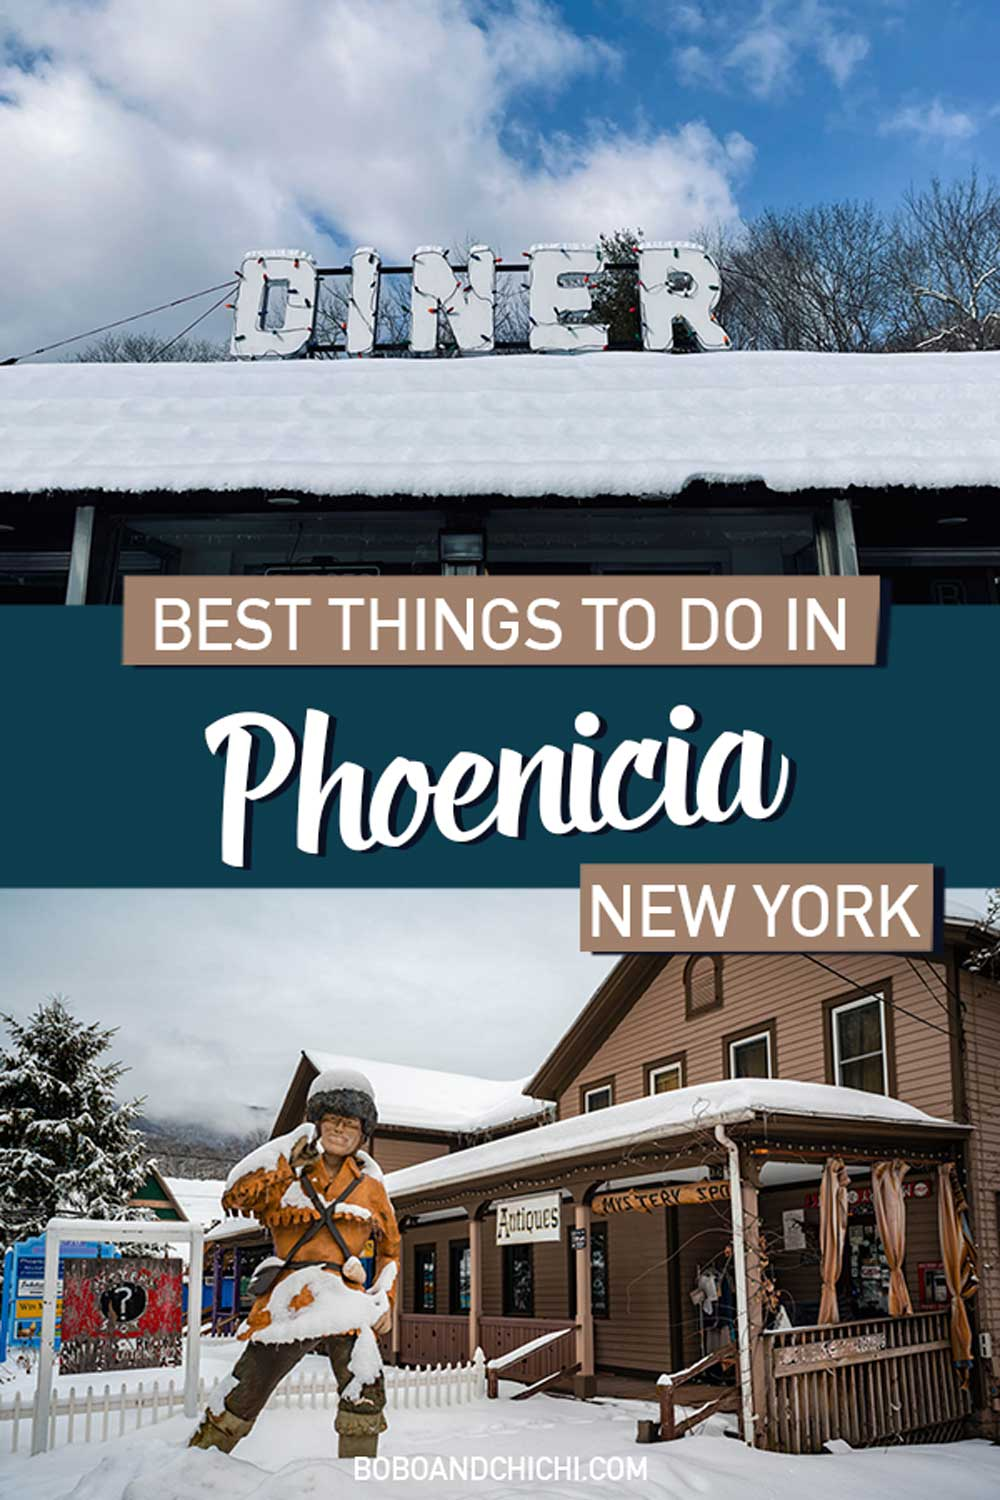 things-to-do-in-phoenicia-new-york